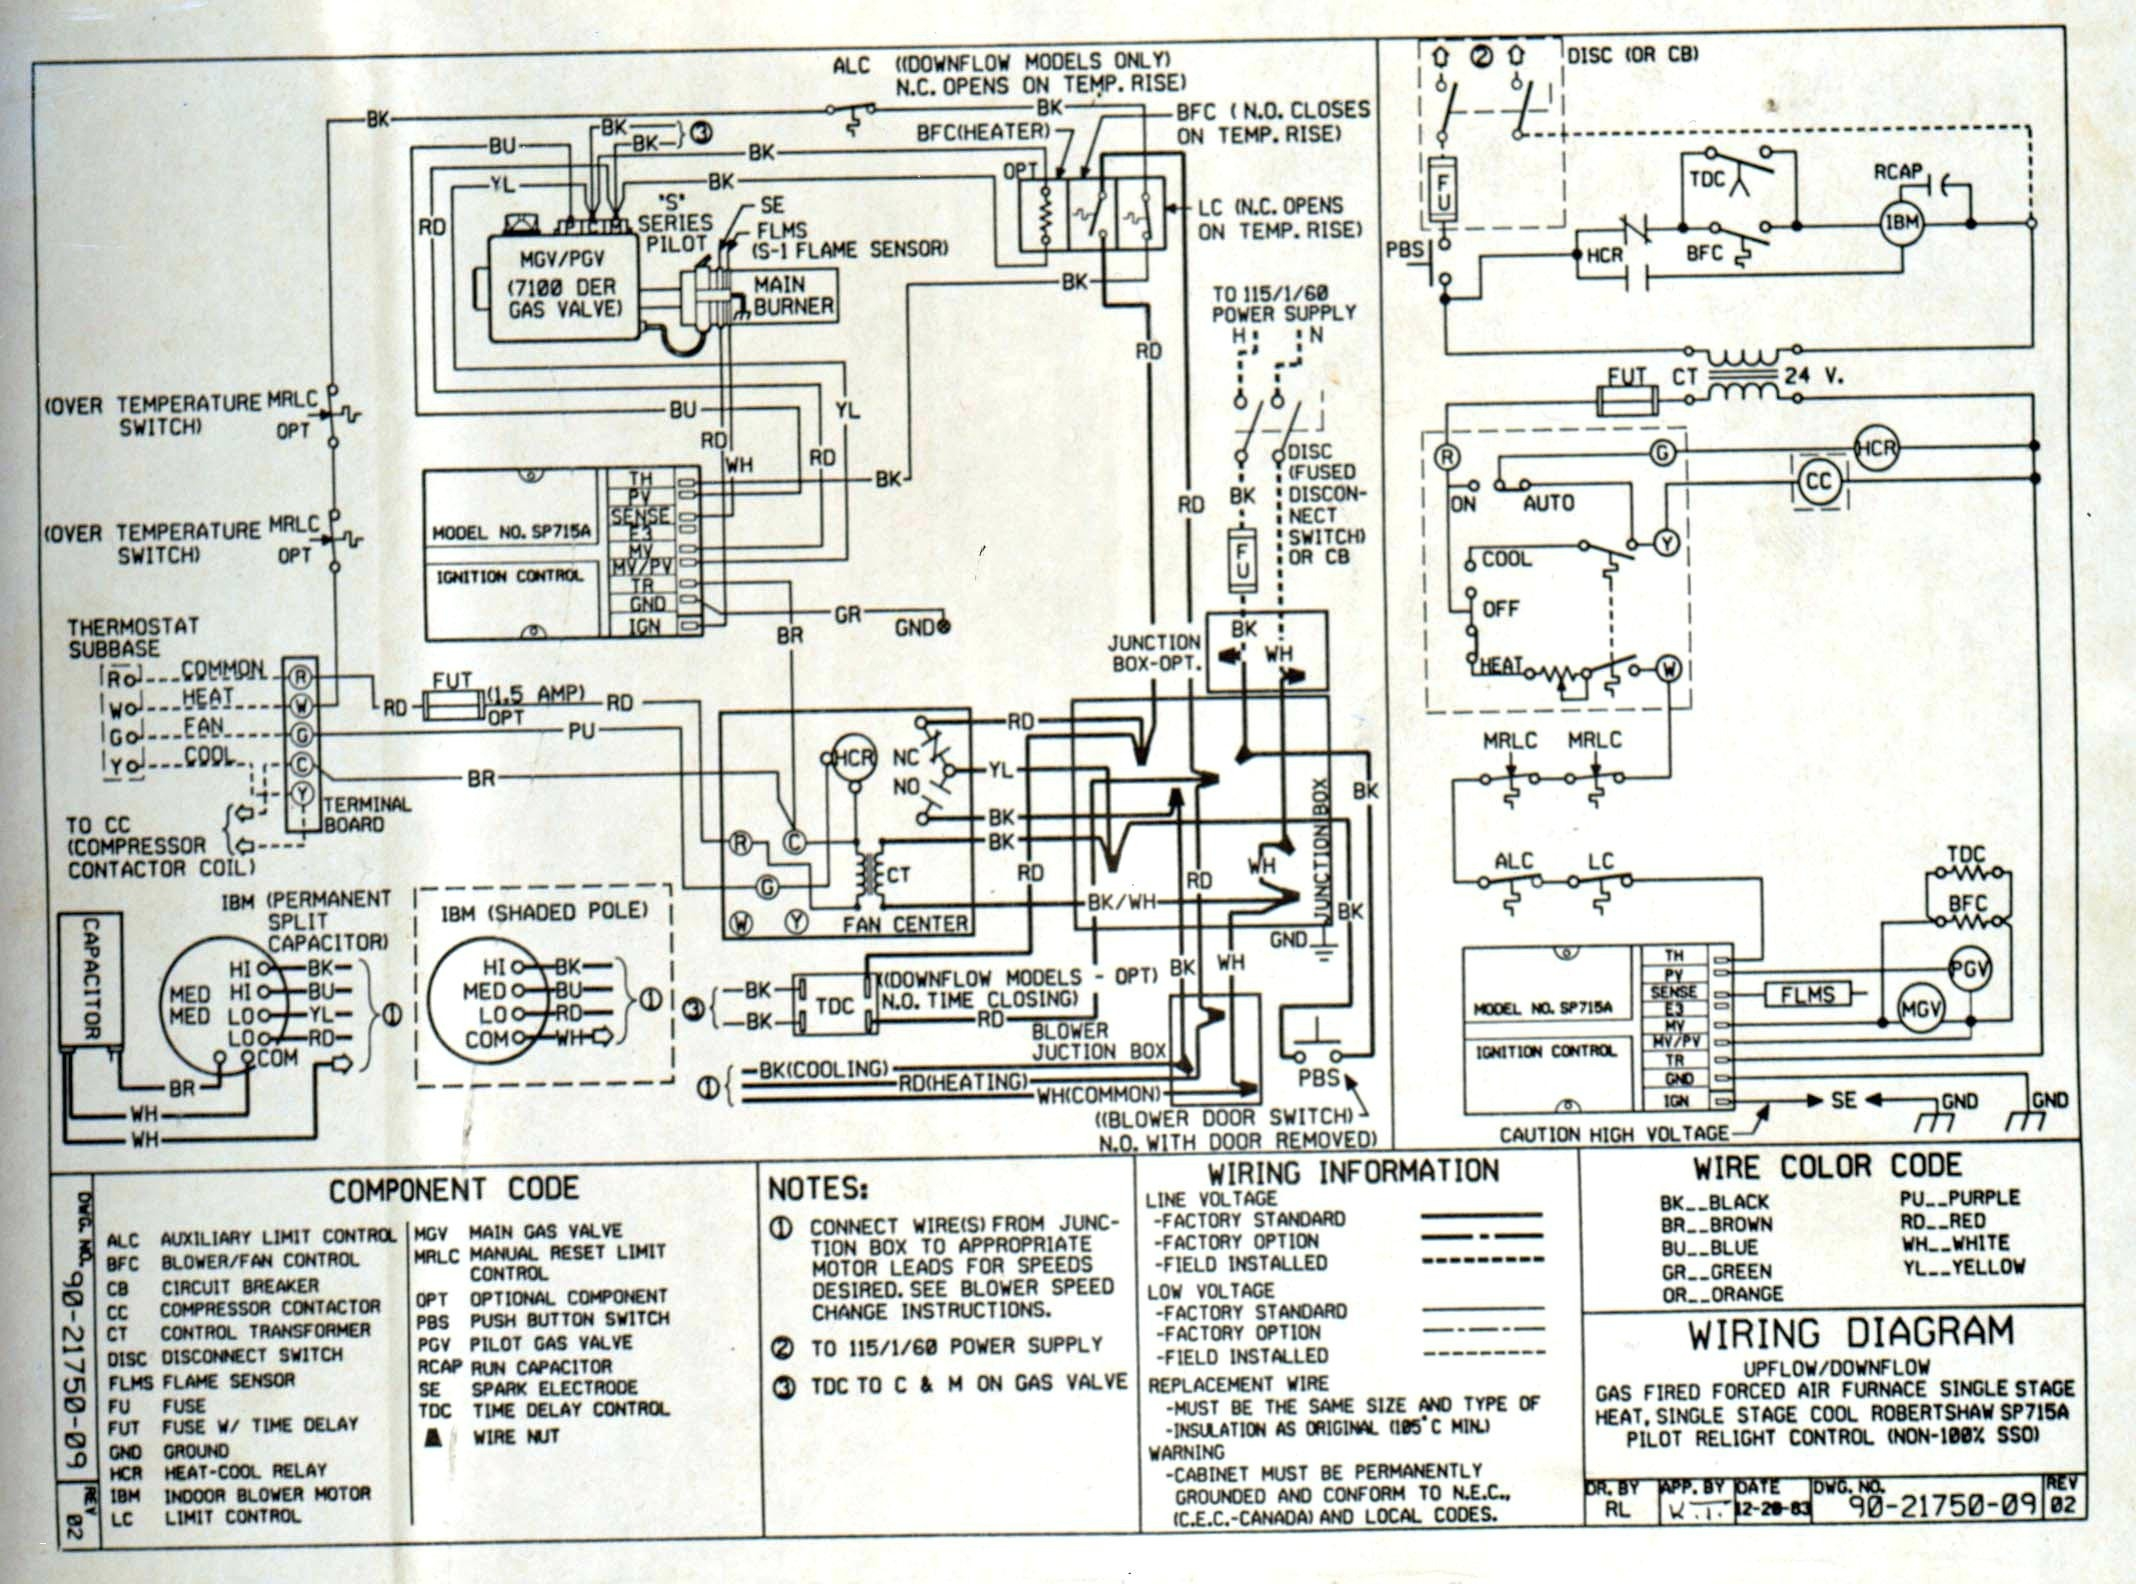 goodman ac unit wiring diagram Download-Wiring Diagram for Goodman Ac Unit New Wiring A Ac thermostat Diagram New Goodman Air Handler 10-s